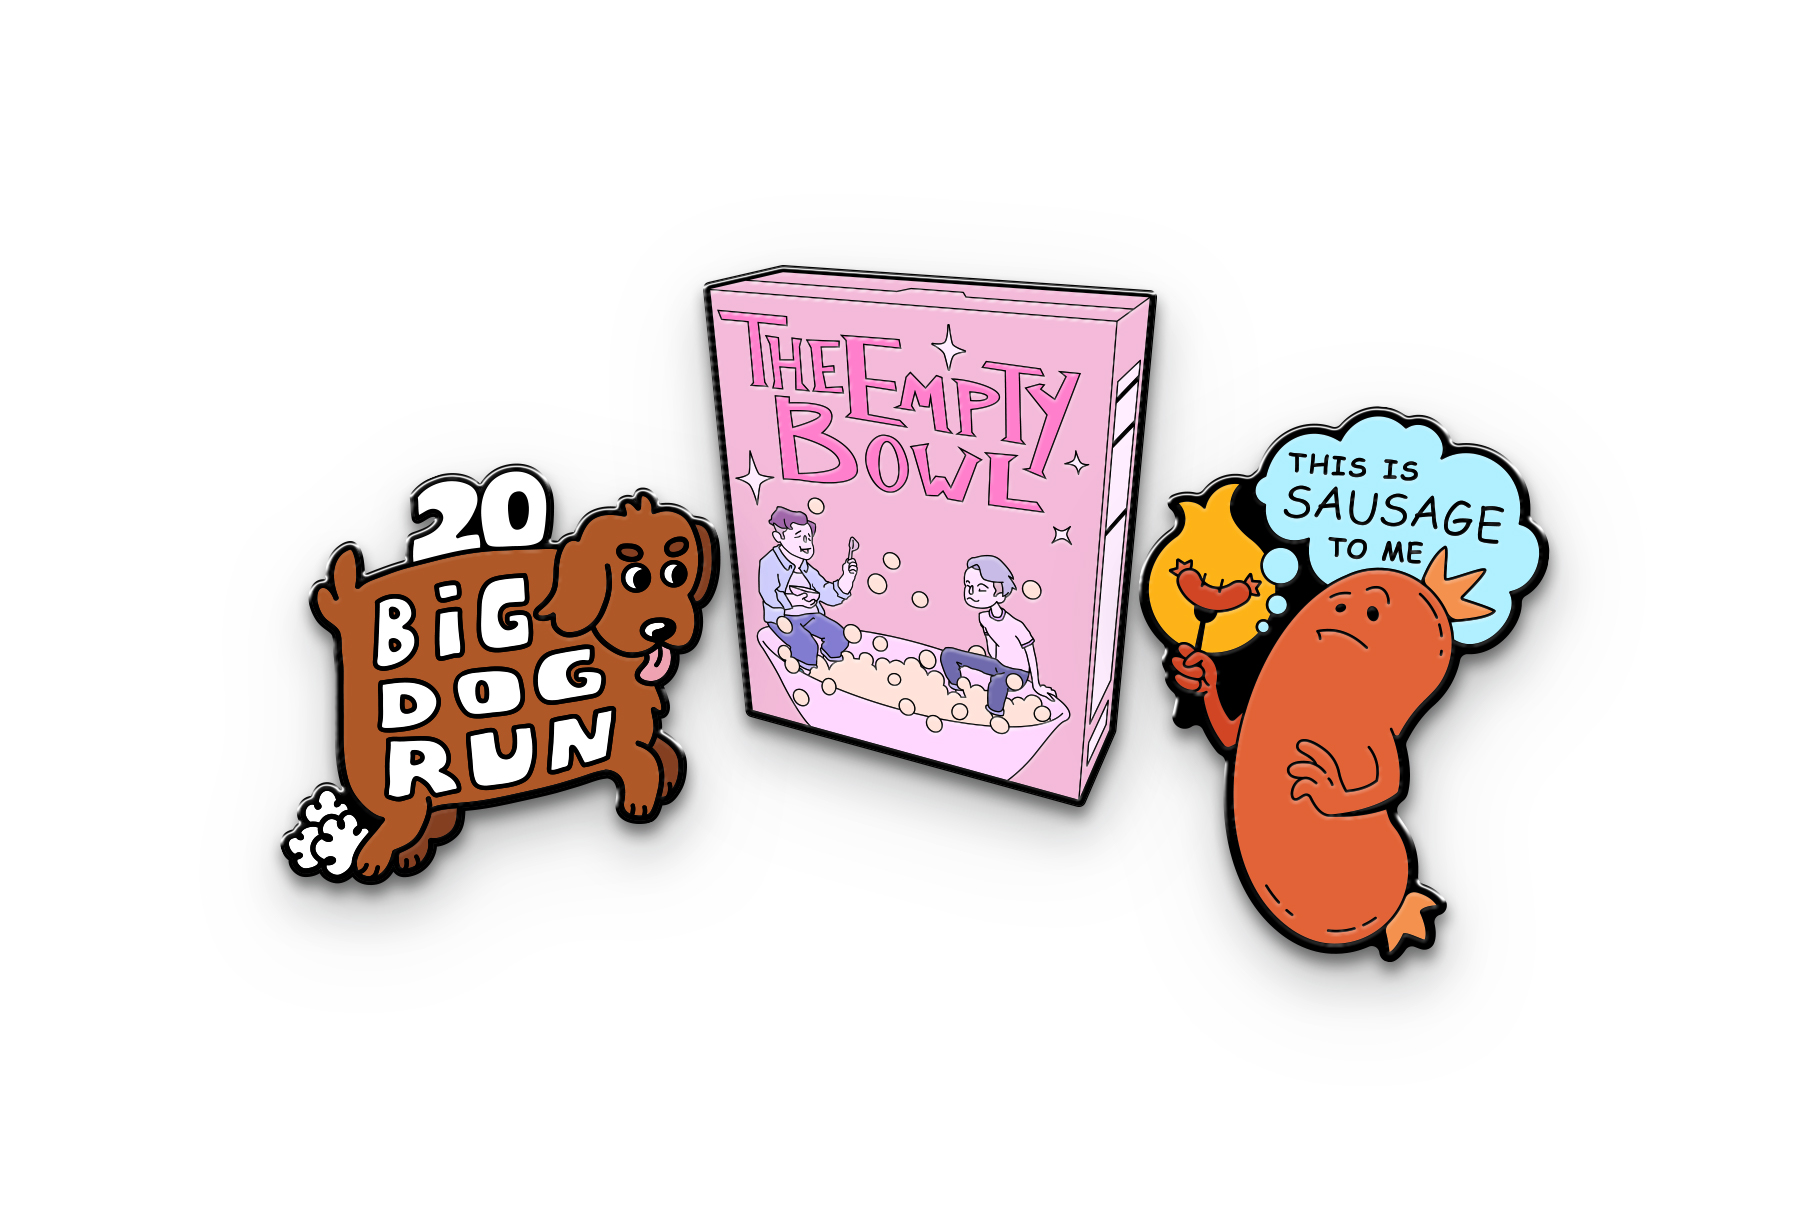 "Image of the three March McElroy merch items. The left image is an enamel pin of a brown dog that says, ""20 Big Dog Run"" with little clouds coming off its back feet. The center is an enamel pin of a pink cereal box that says, ""The Empty Bowl"" with an illustration of Justin and Dan Goubert sitting in a cereal bowl. The right image is an enamel pin of a sausage holding a sausage on a fork with a thought bubble that says, ""This is sausage to me."""